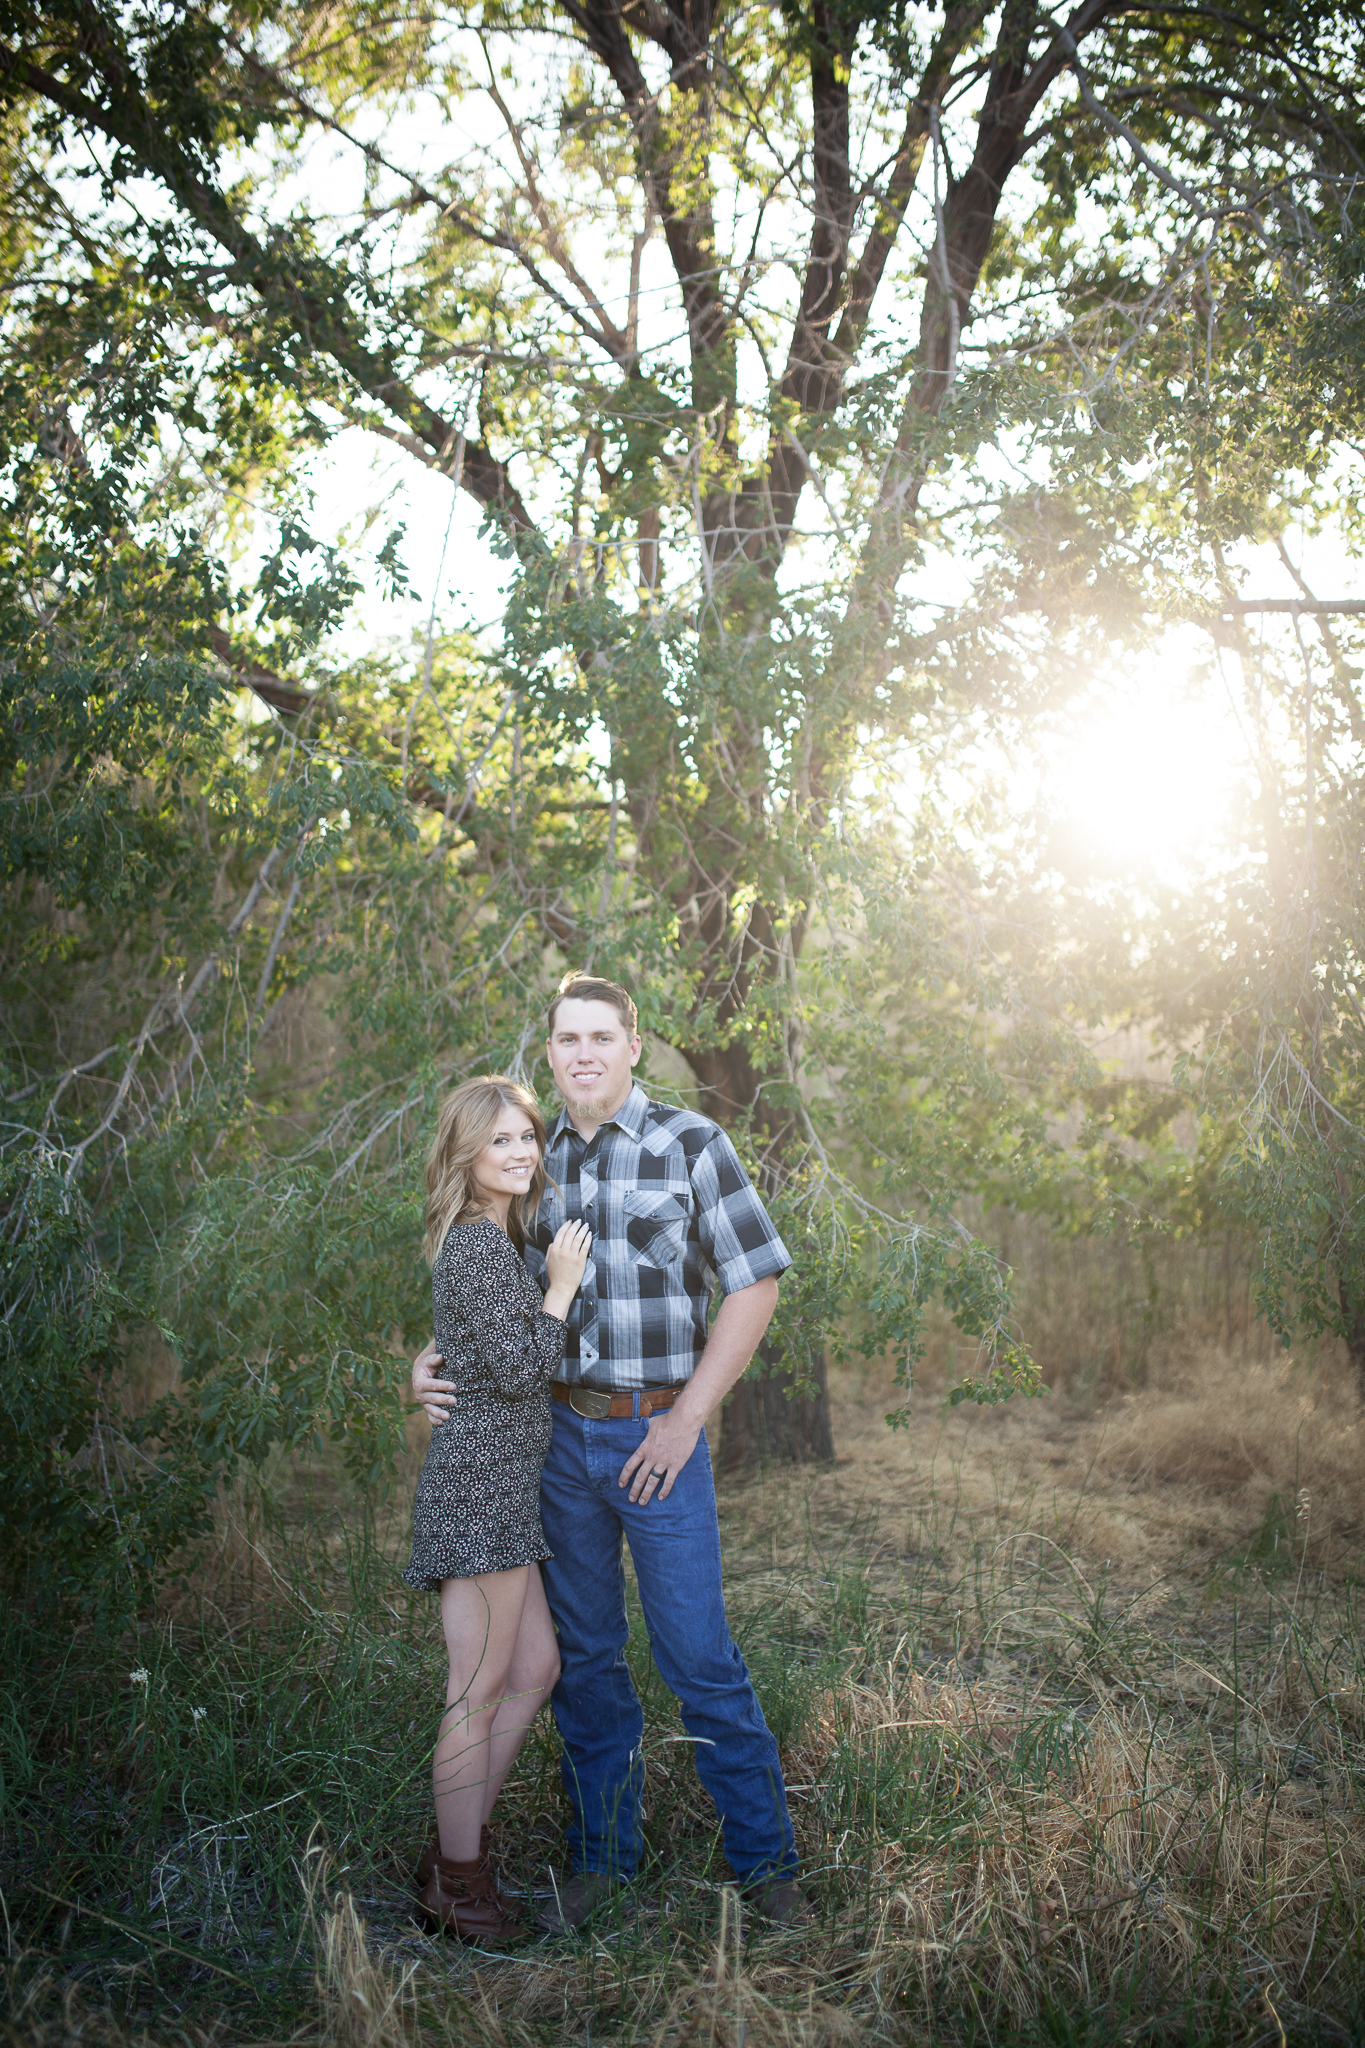 alex+haley{minisession}(17).jpg